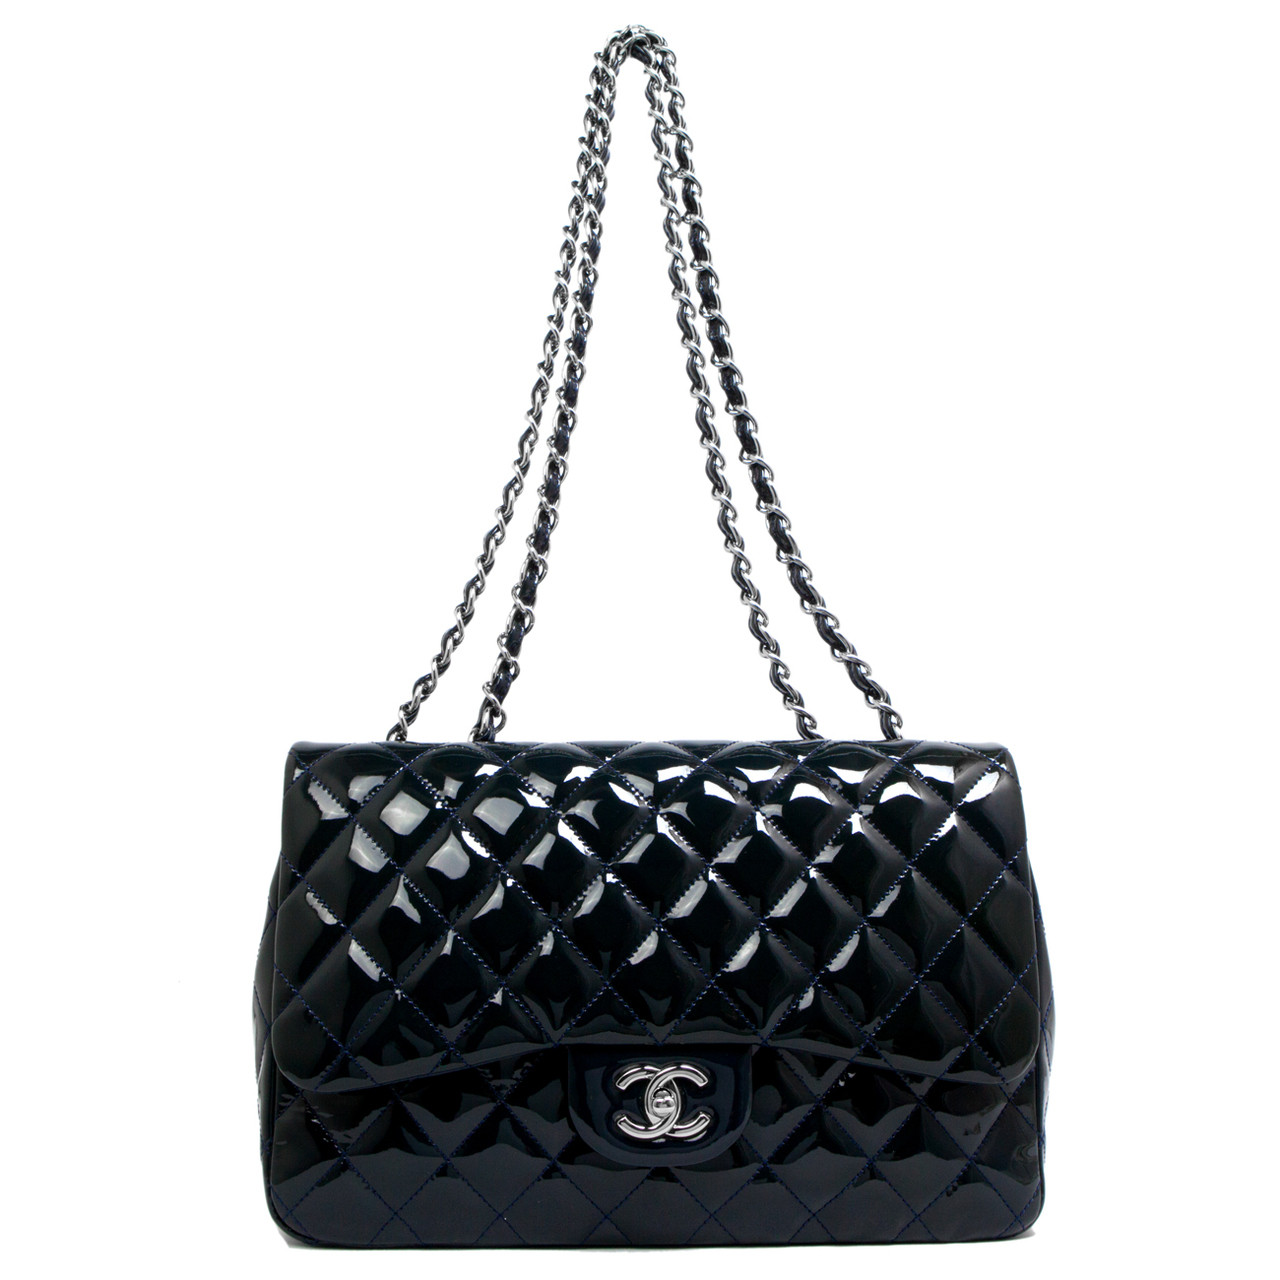 0eb6fff8f744 Chanel Navy Patent Leather Jumbo Single Flap - modaselle